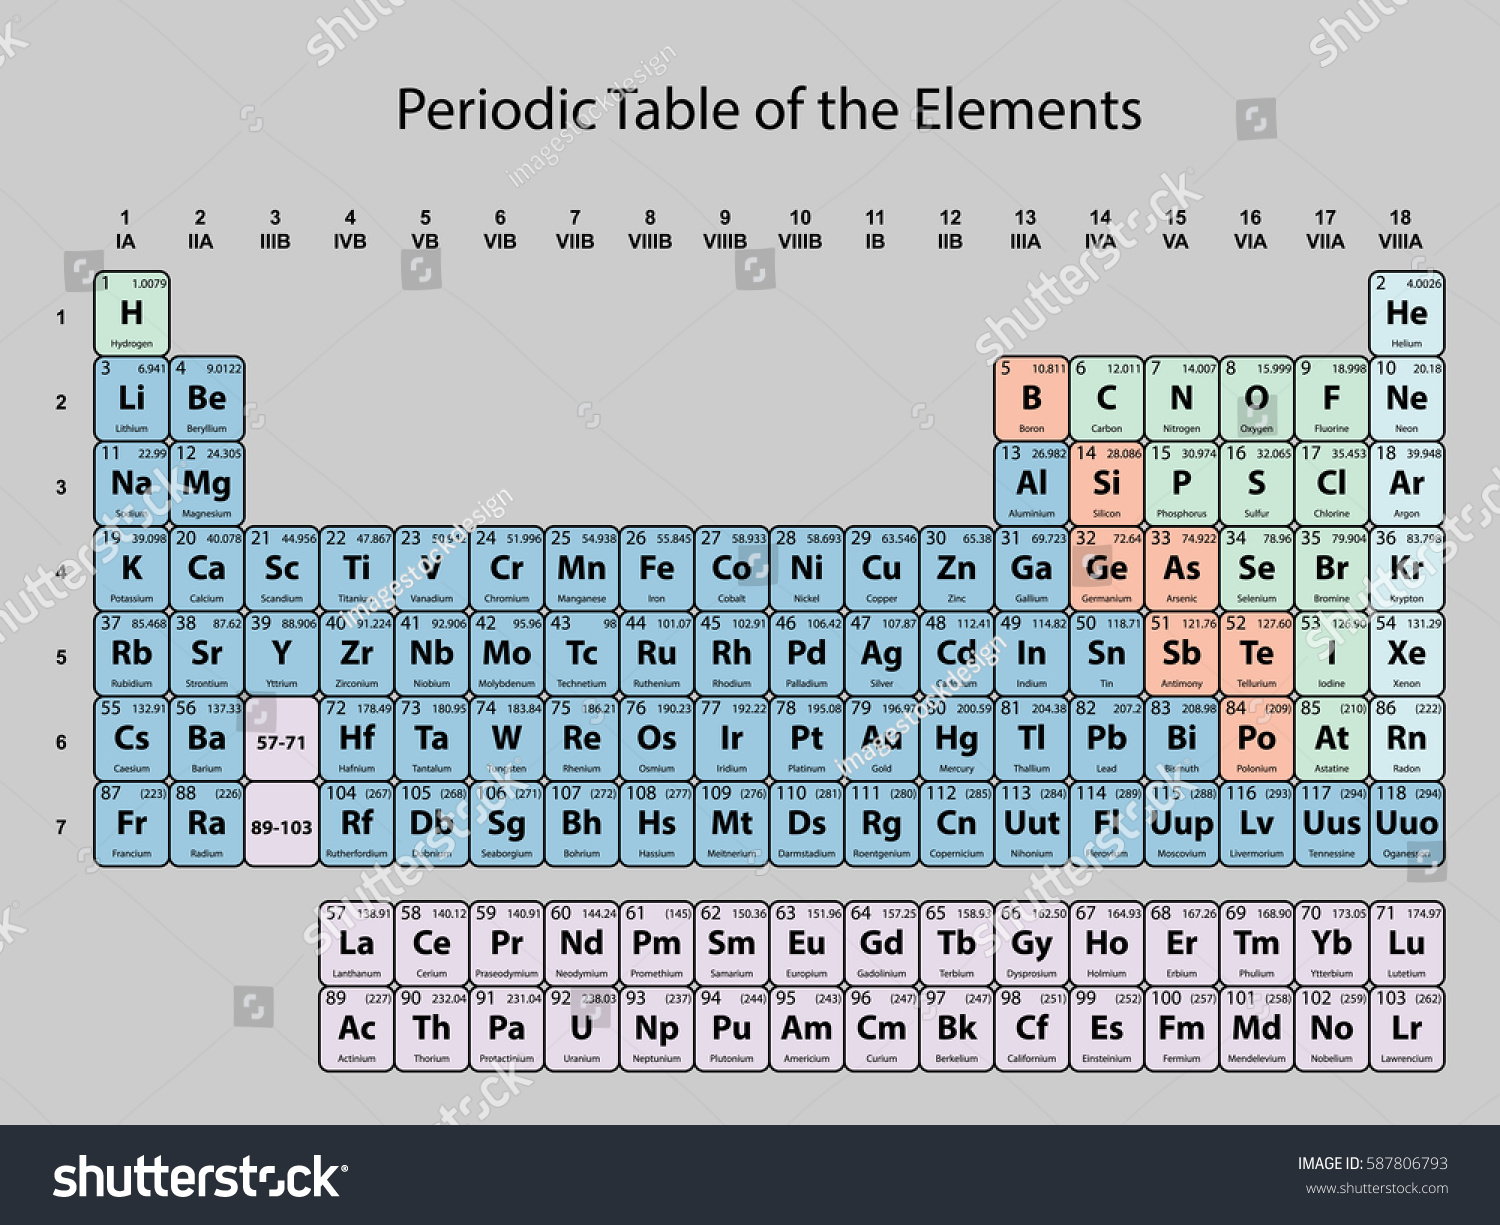 Periodic table elements atomic number symbol stock vector periodic table of the elements with atomic number symbol and weight with color delimitation on gamestrikefo Images